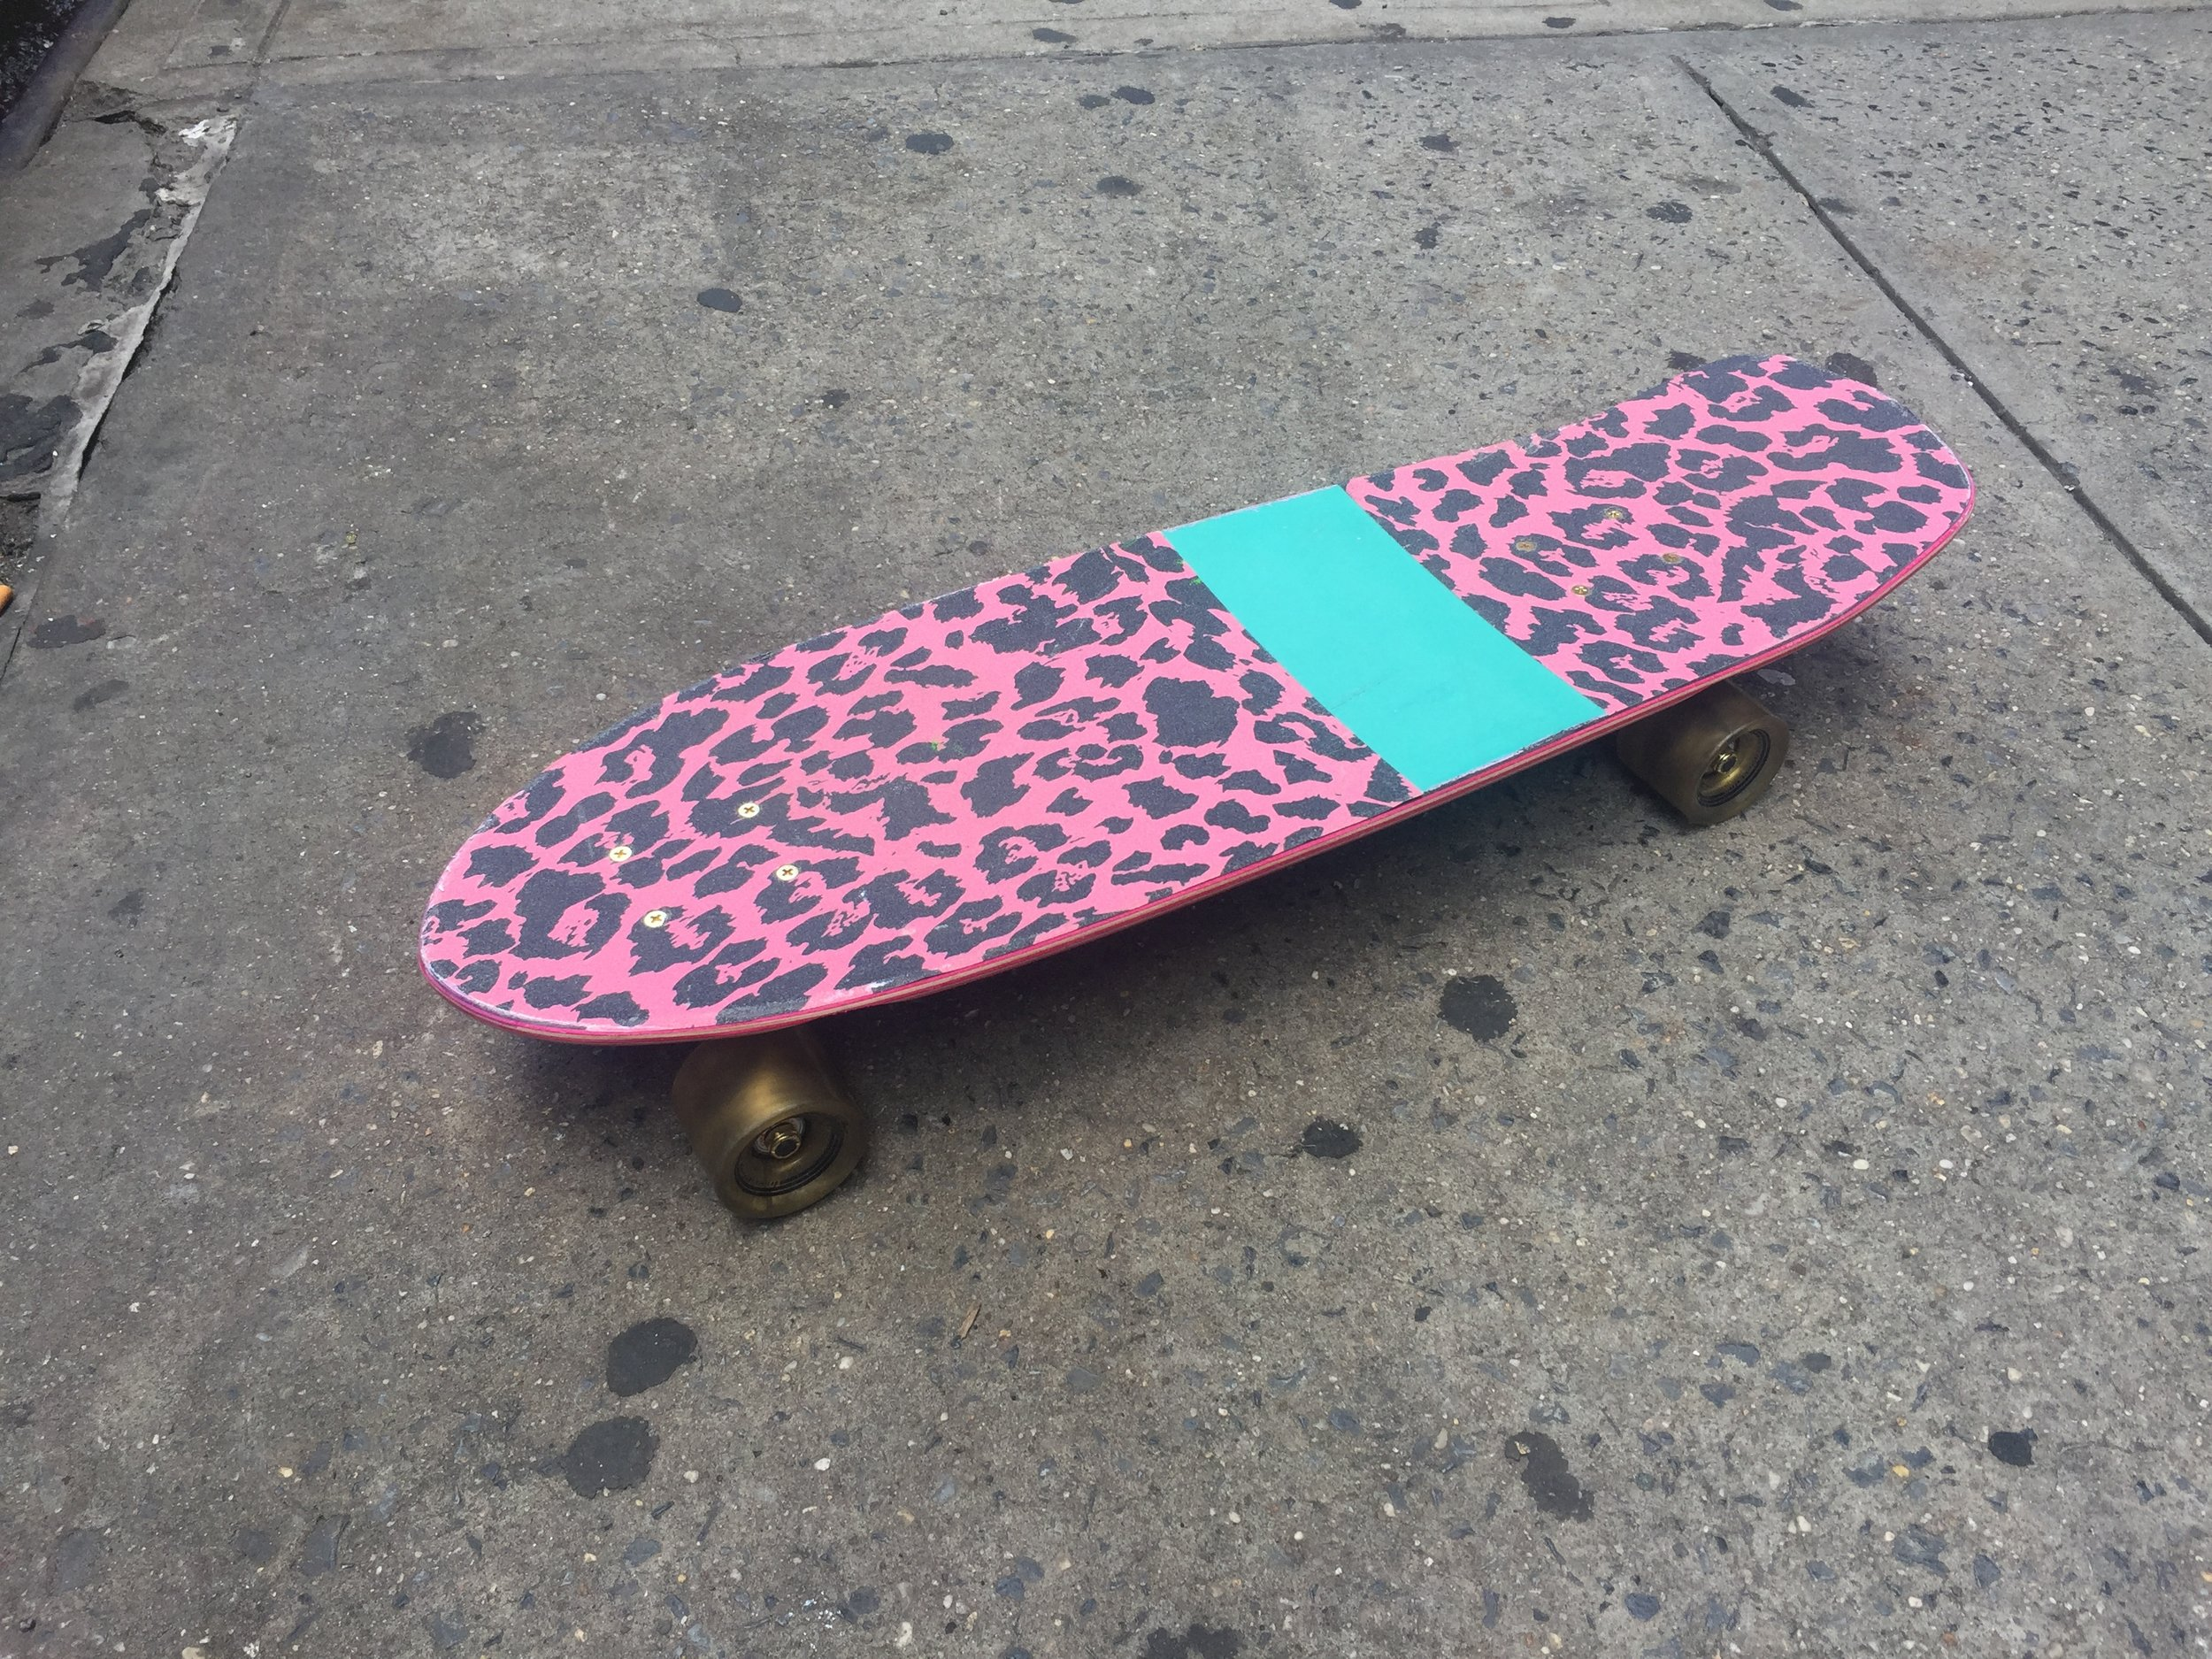 "SKATEBOARD 2 TOP  PINK LEOPARD PRINT W/ TURQUOISE STRIPE 29"" IN LENGTH"